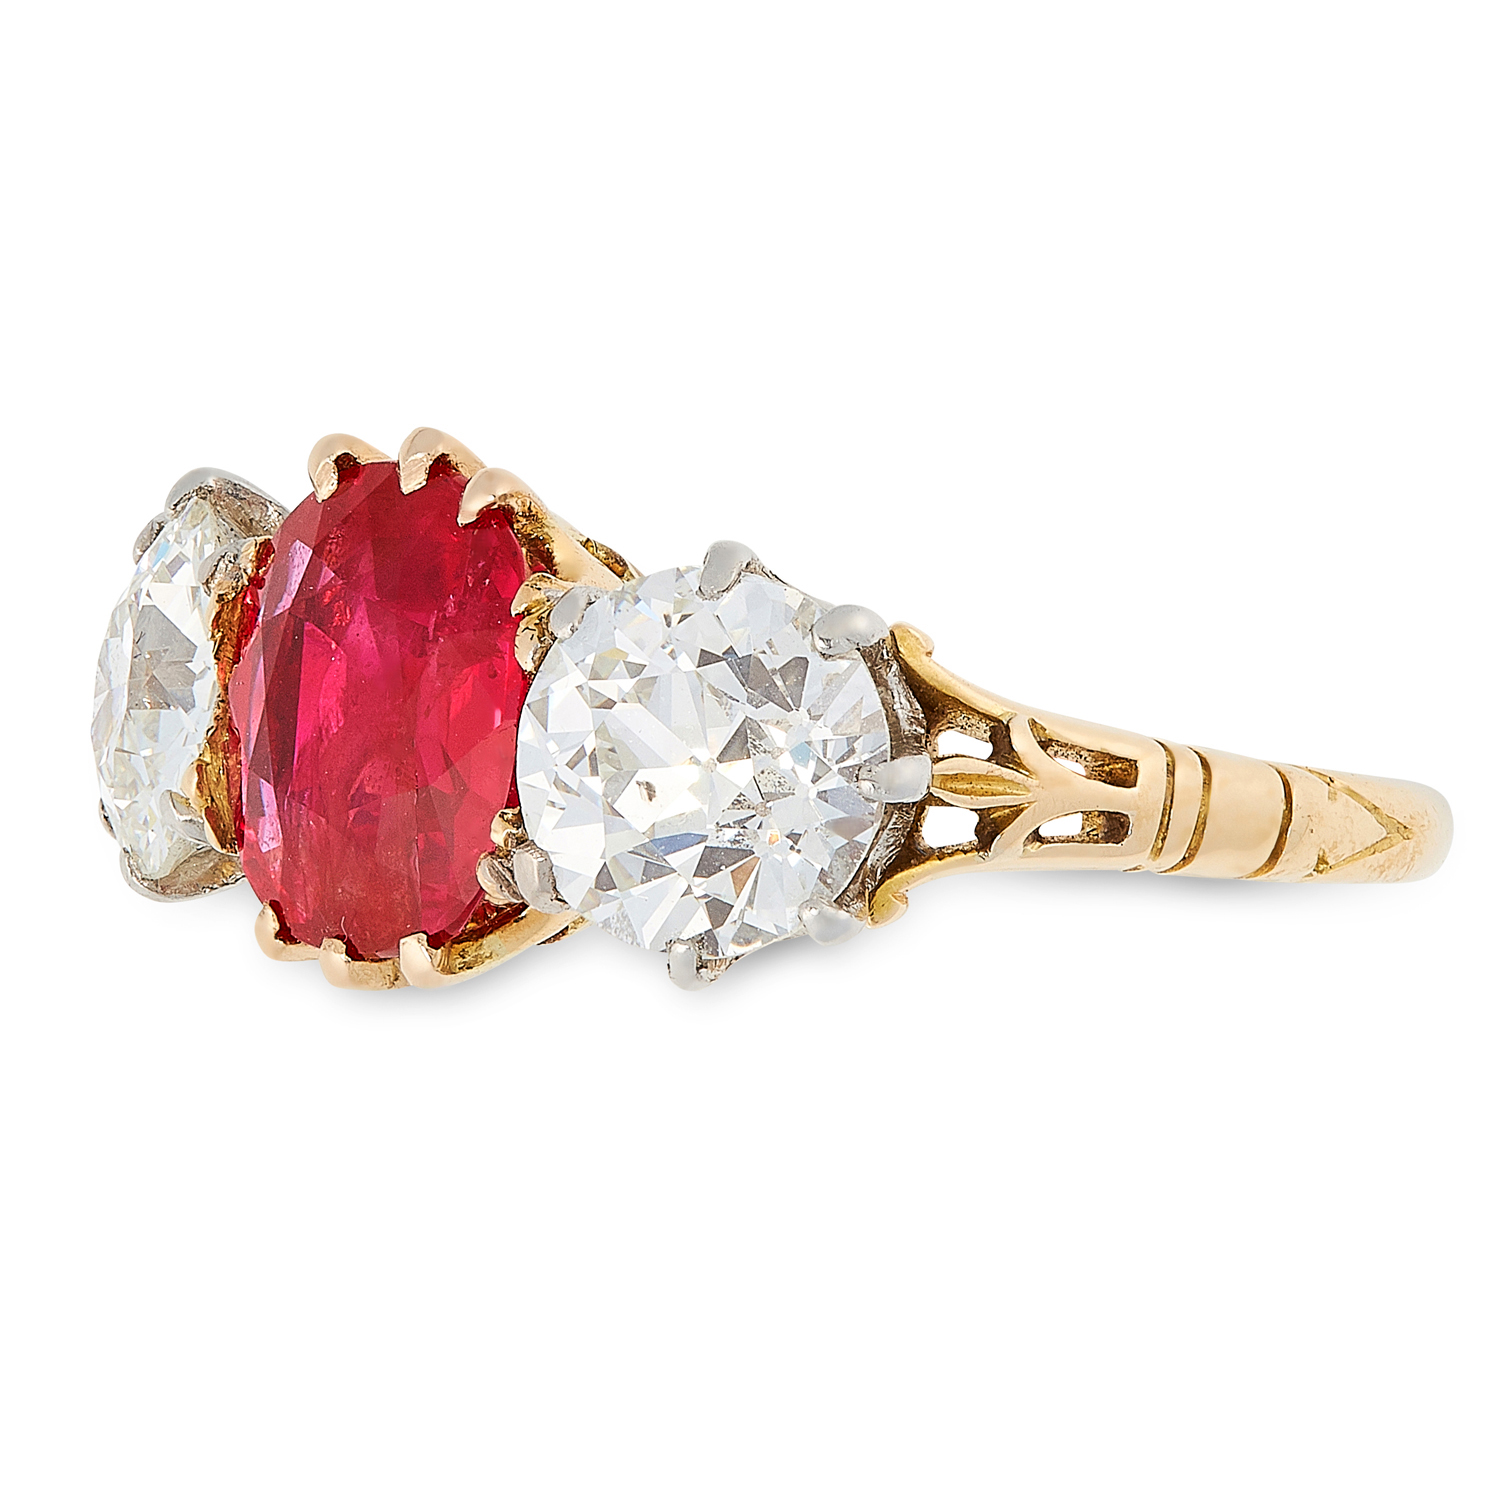 A 1.83 BURMA NO HEAT RUBY AND DIAMOND THREE STONE RING, CIRCA 1950 in 18ct yellow gold and platinum, - Image 2 of 2